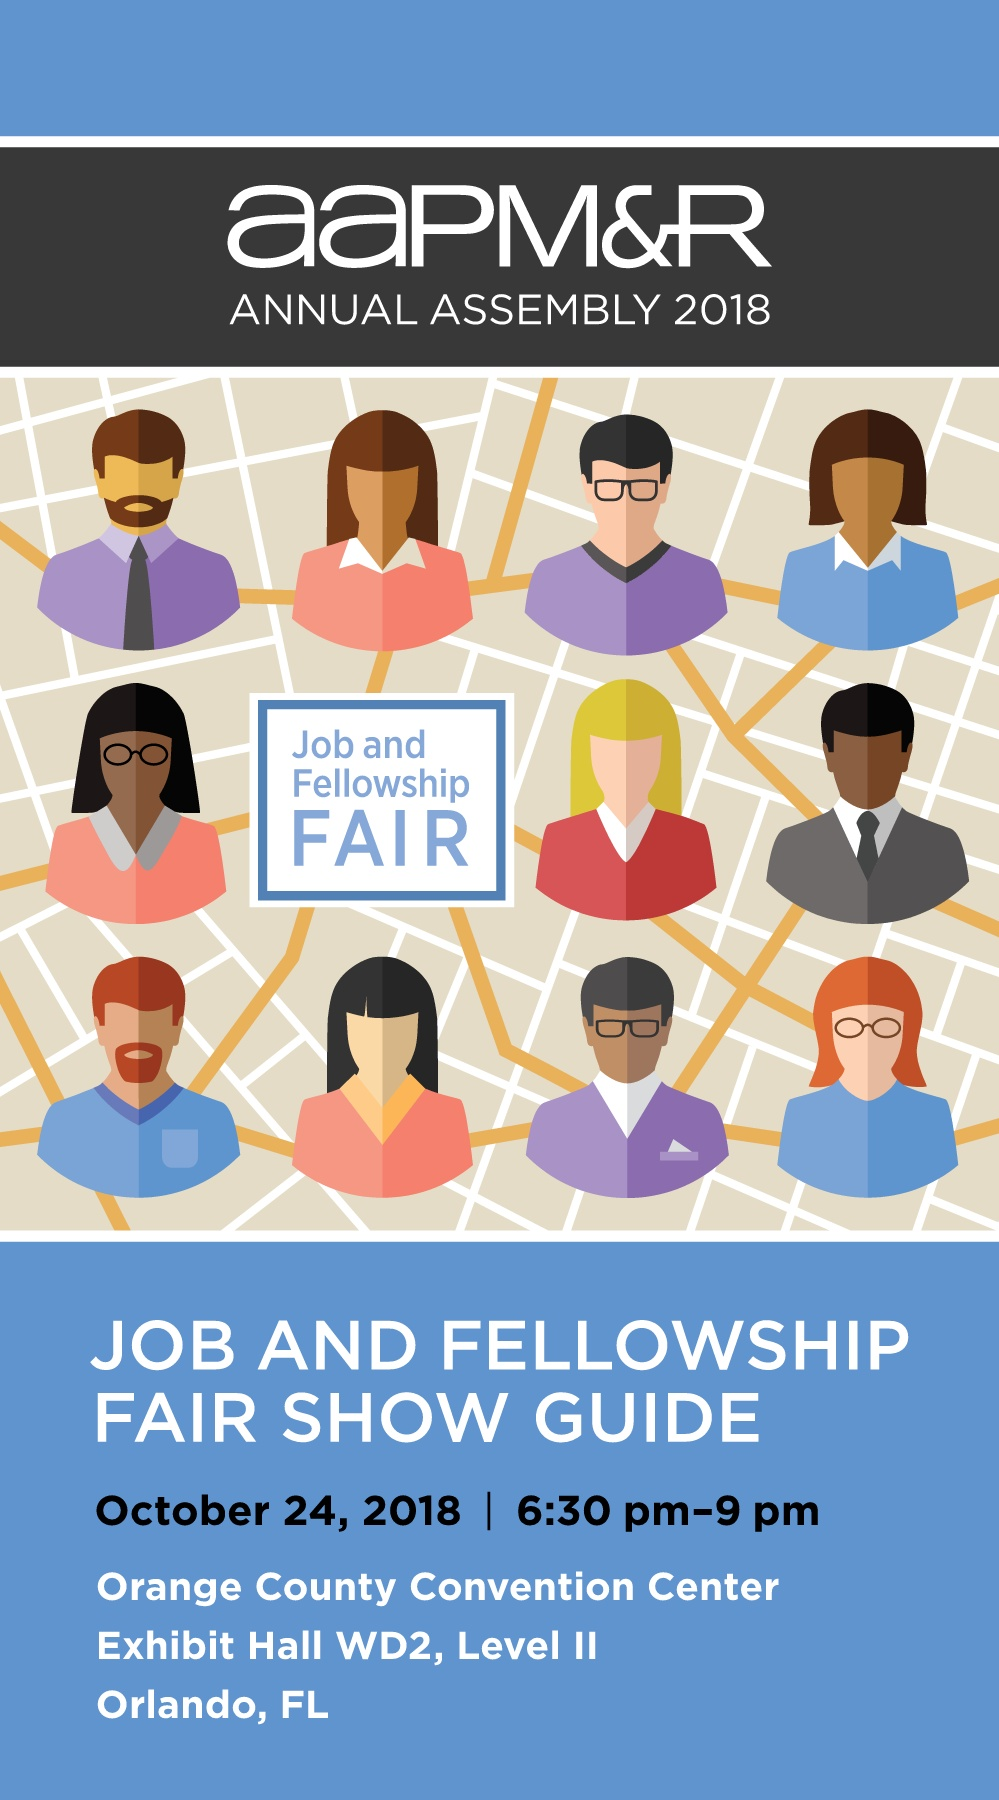 AAPM&R 2018 Job and Fellowship Fair Show Guide Pages 1 - 38